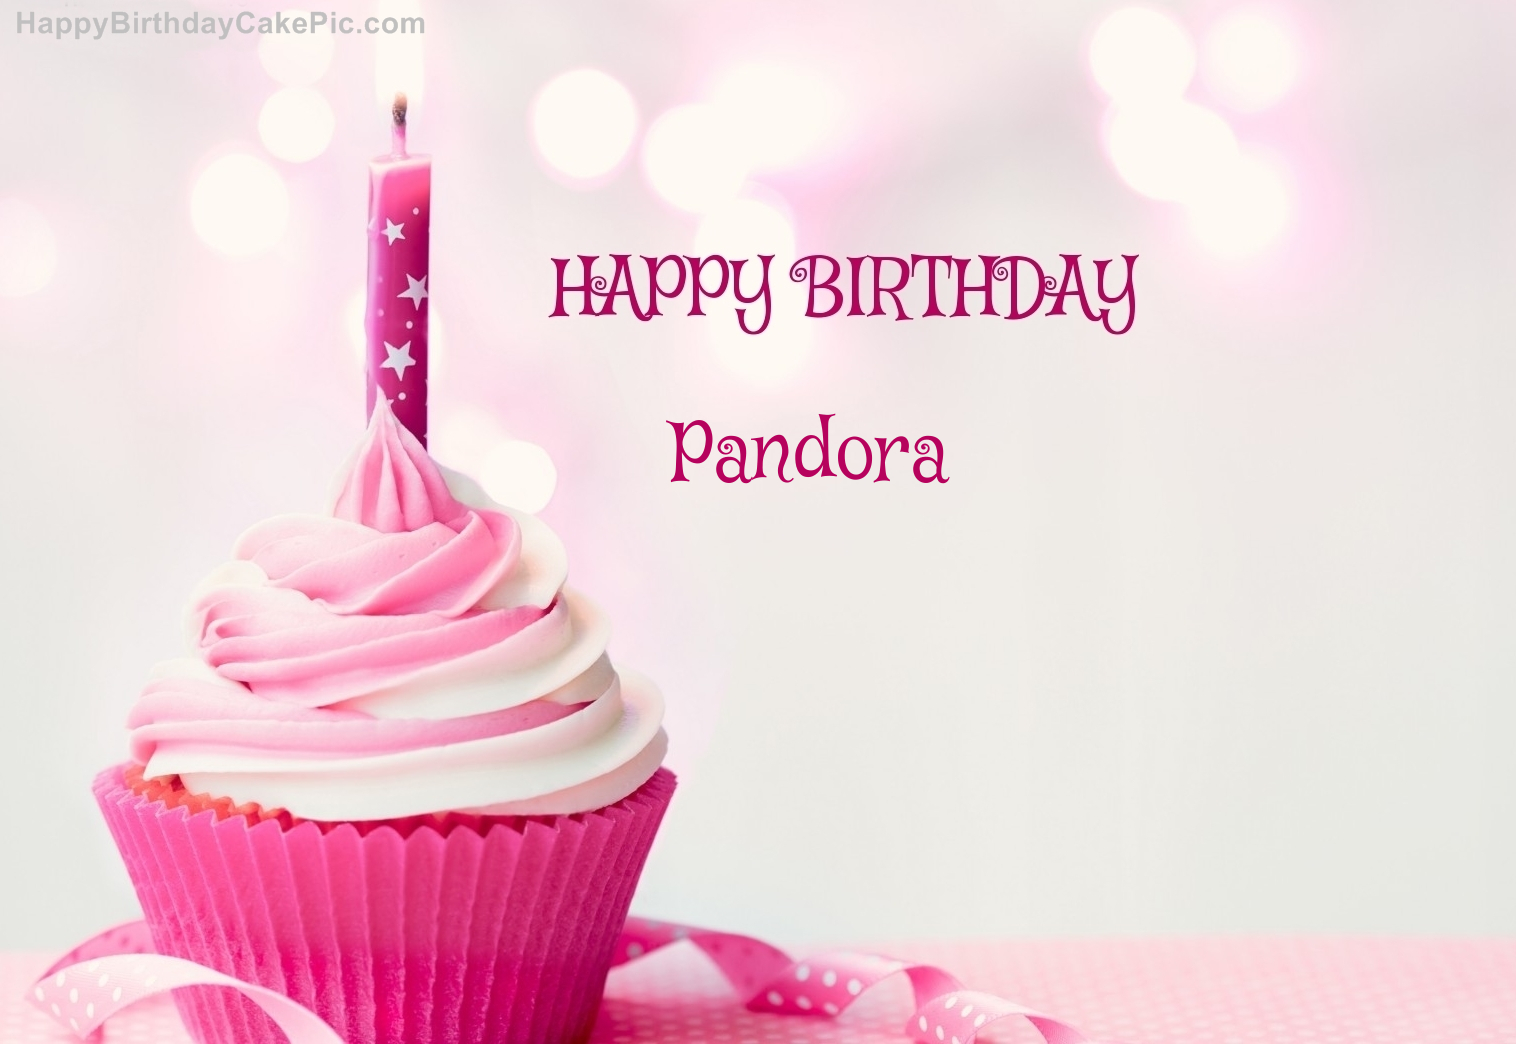 Tous en coeur pour discutailler!!!!! - Page 14 Happy-birthday-cupcake-candle-pink-picture-for-Pandora